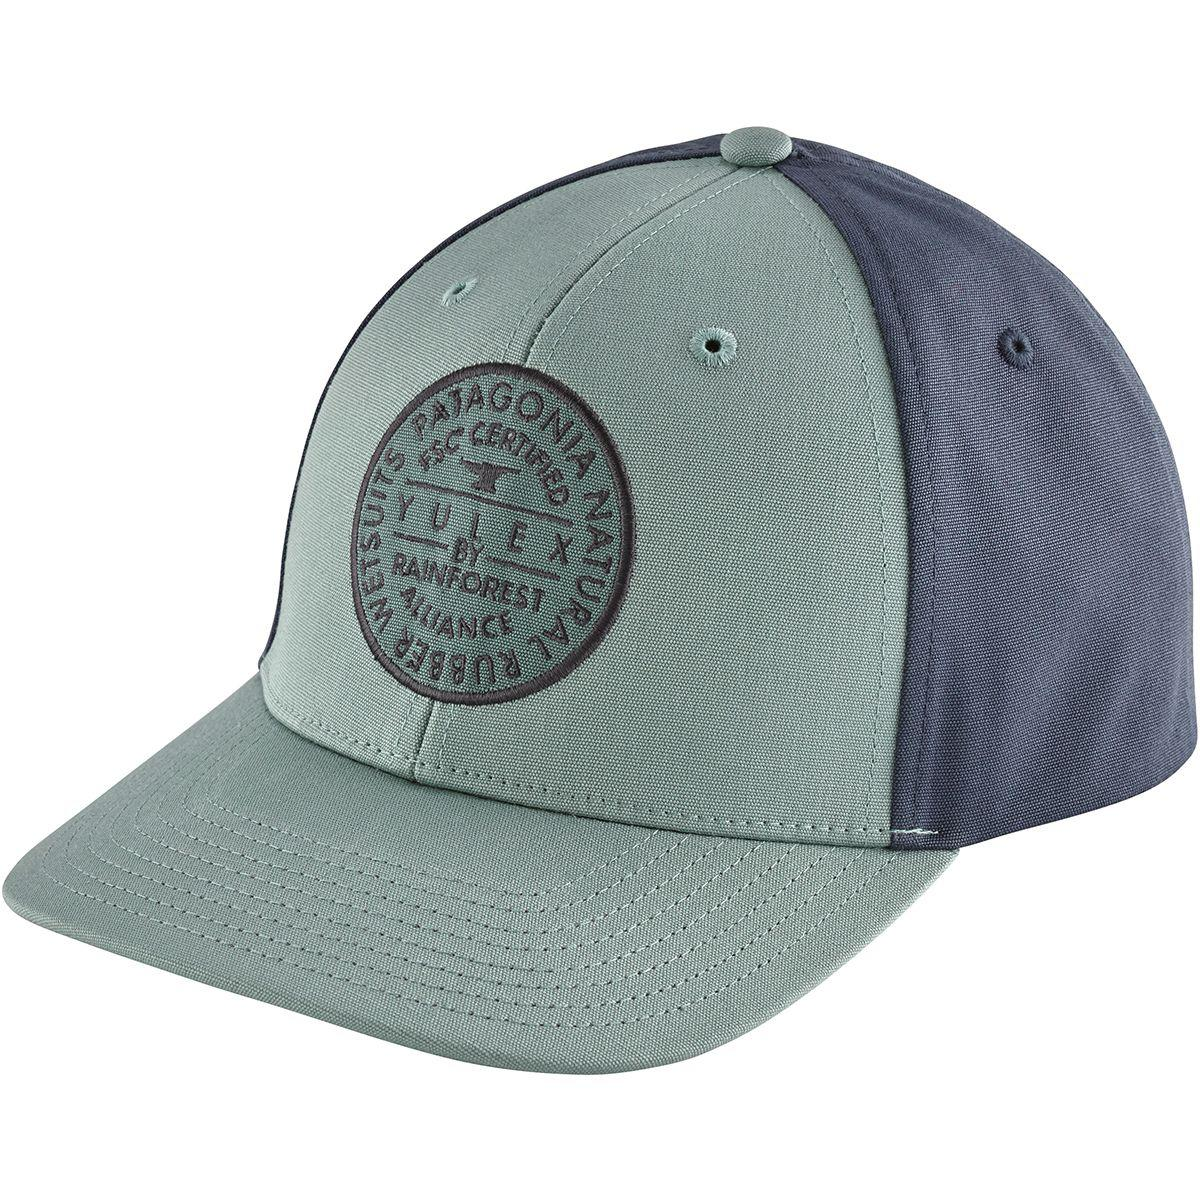 bc14f62c41a Lyst - Patagonia Grow Our Own Roger That Hat in Blue for Men